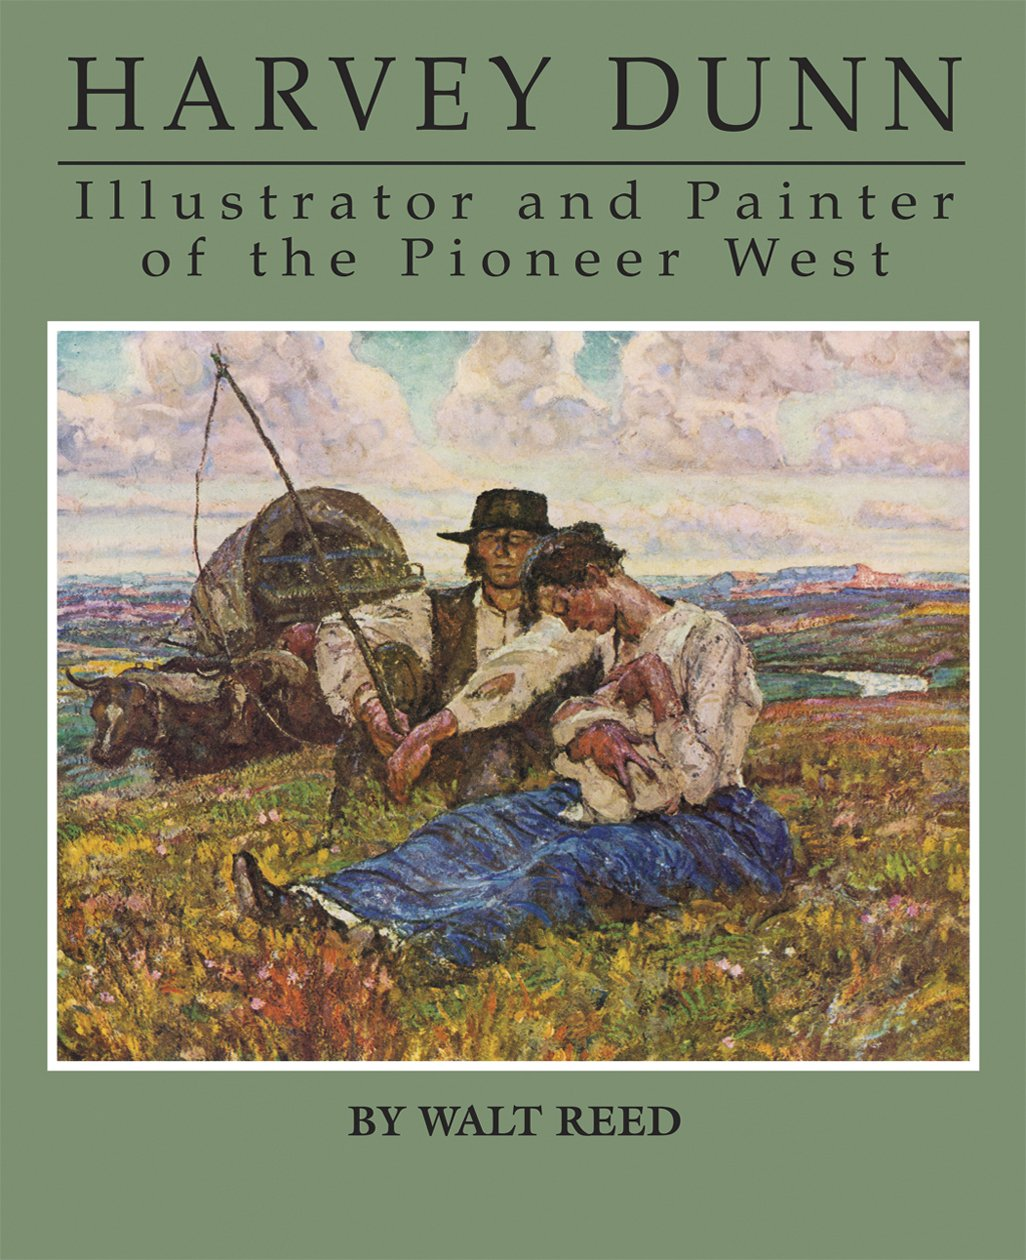 Download Harvey Dunn: Illustrator and Painter of the Pioneer West PDF